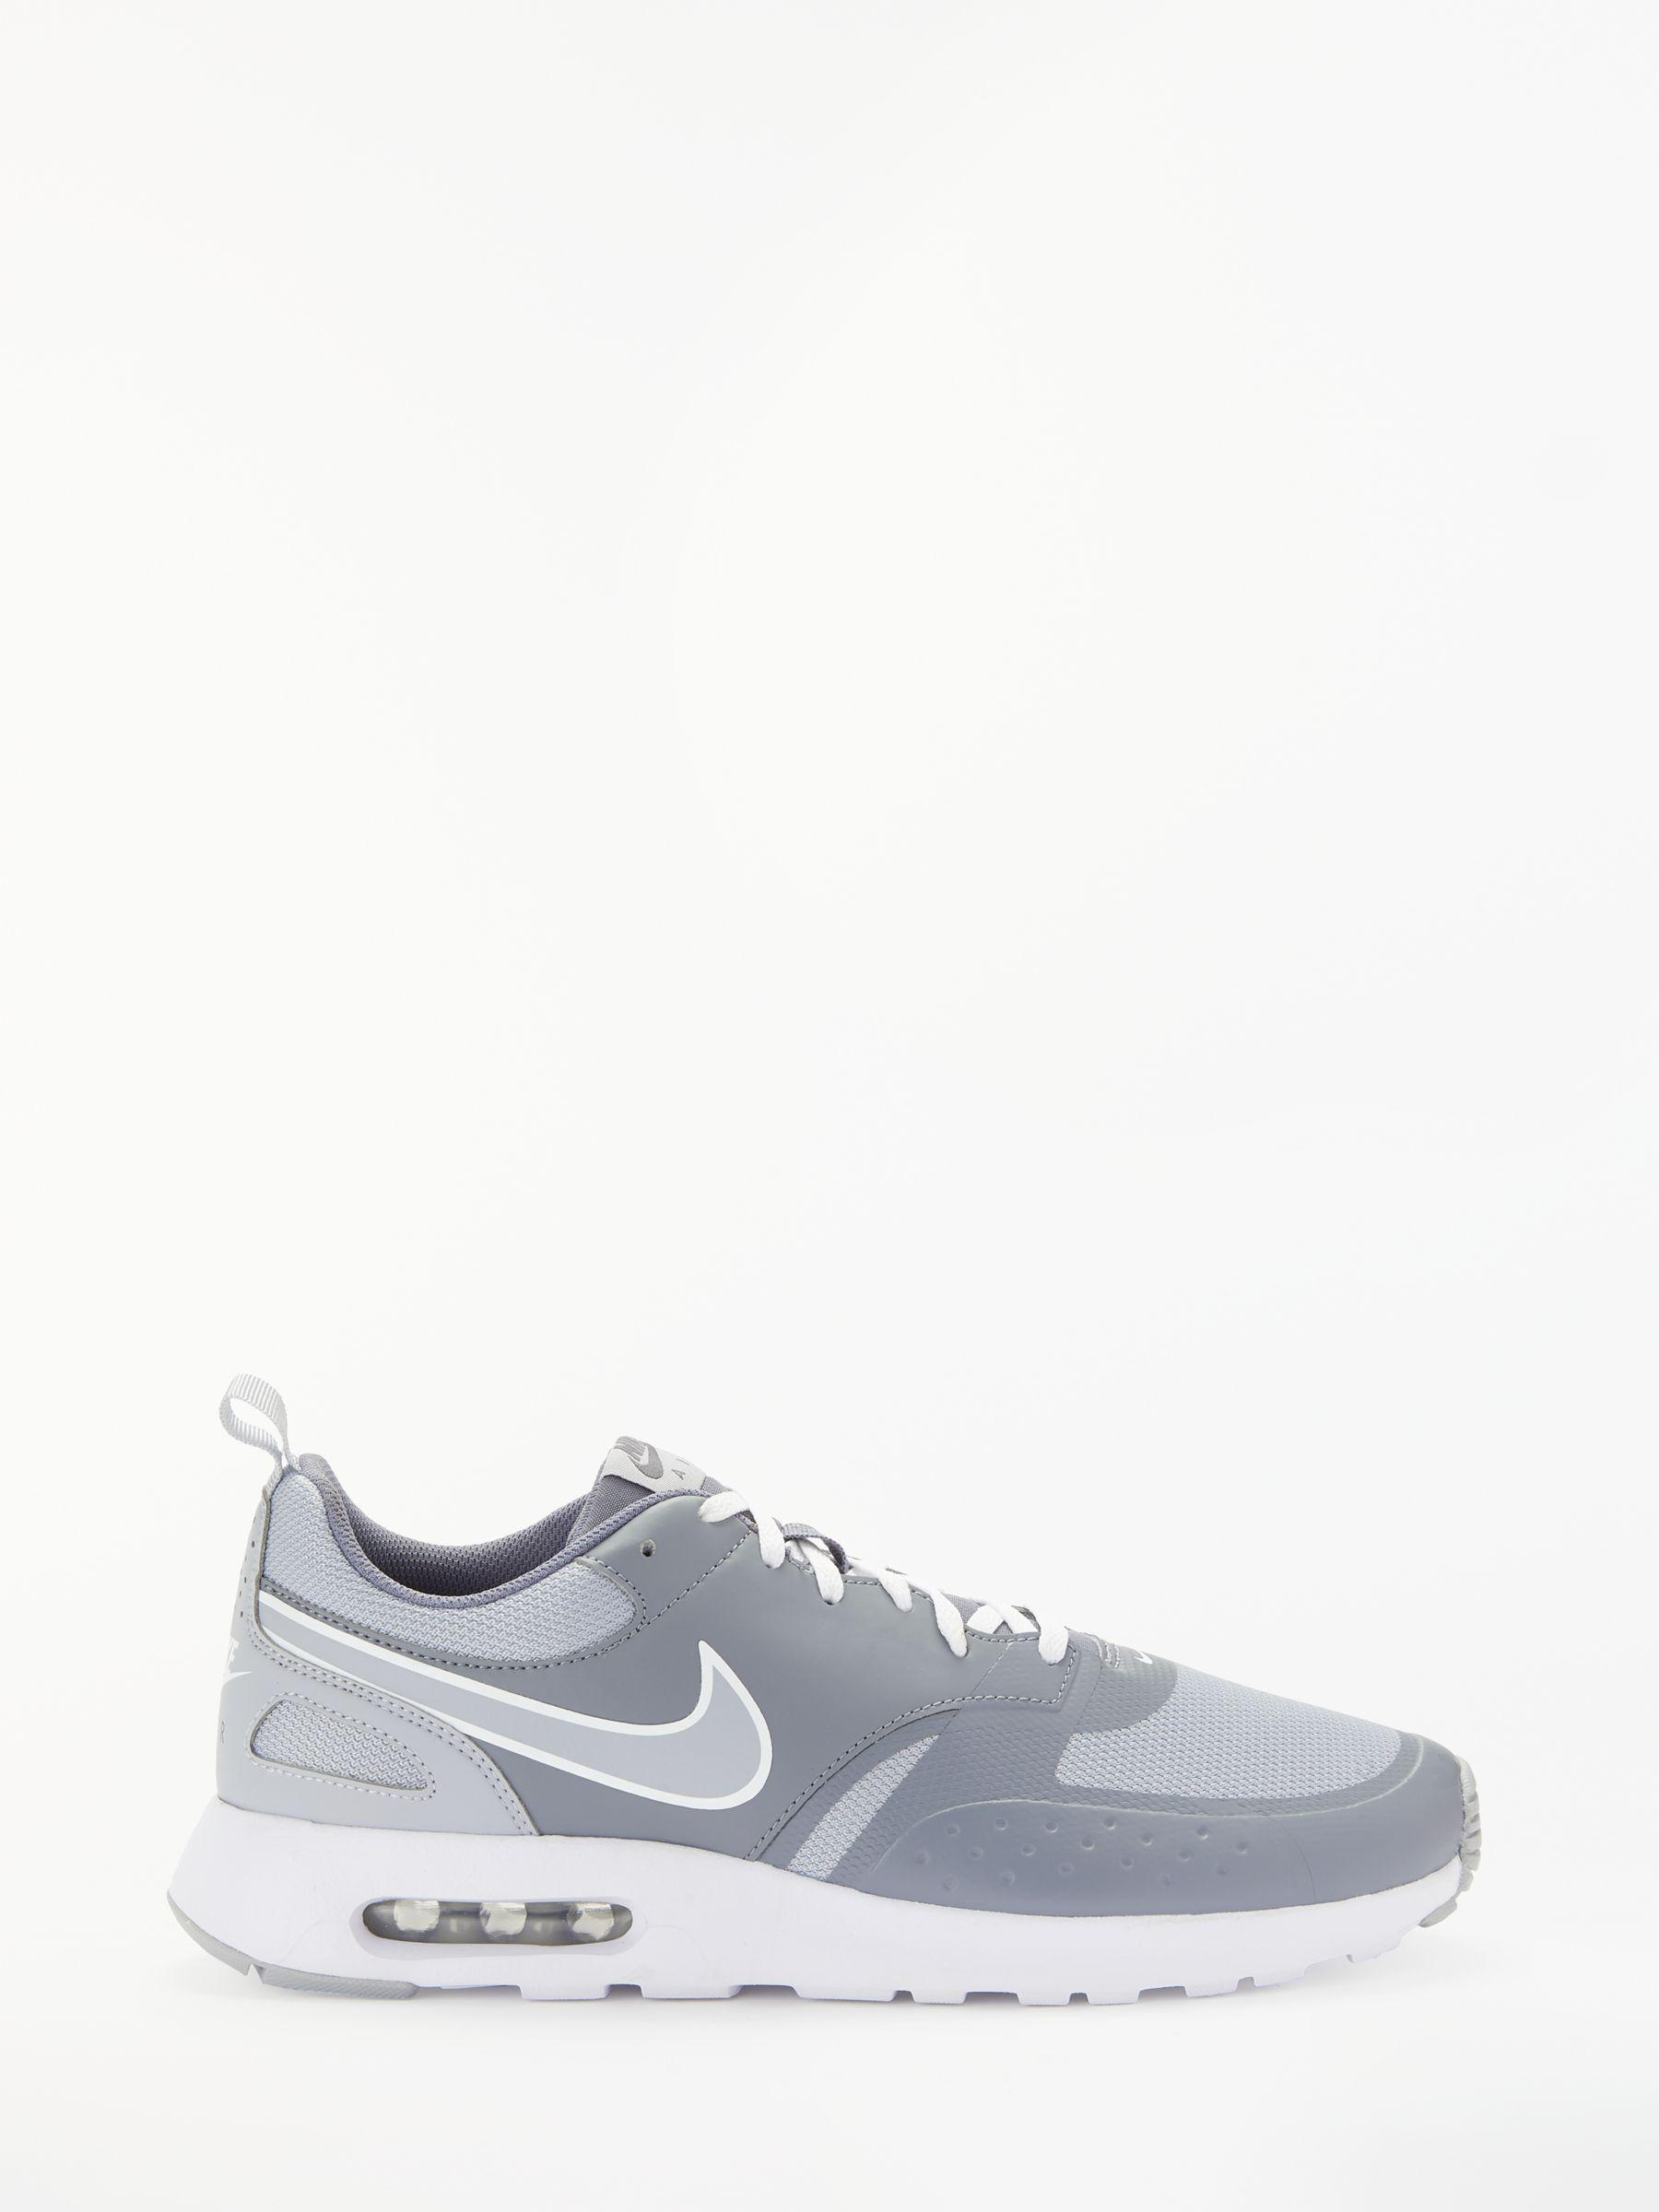 promo code d6fa3 fd2a1 Nike Air Max Vision Men s Trainers in Gray for Men - Lyst